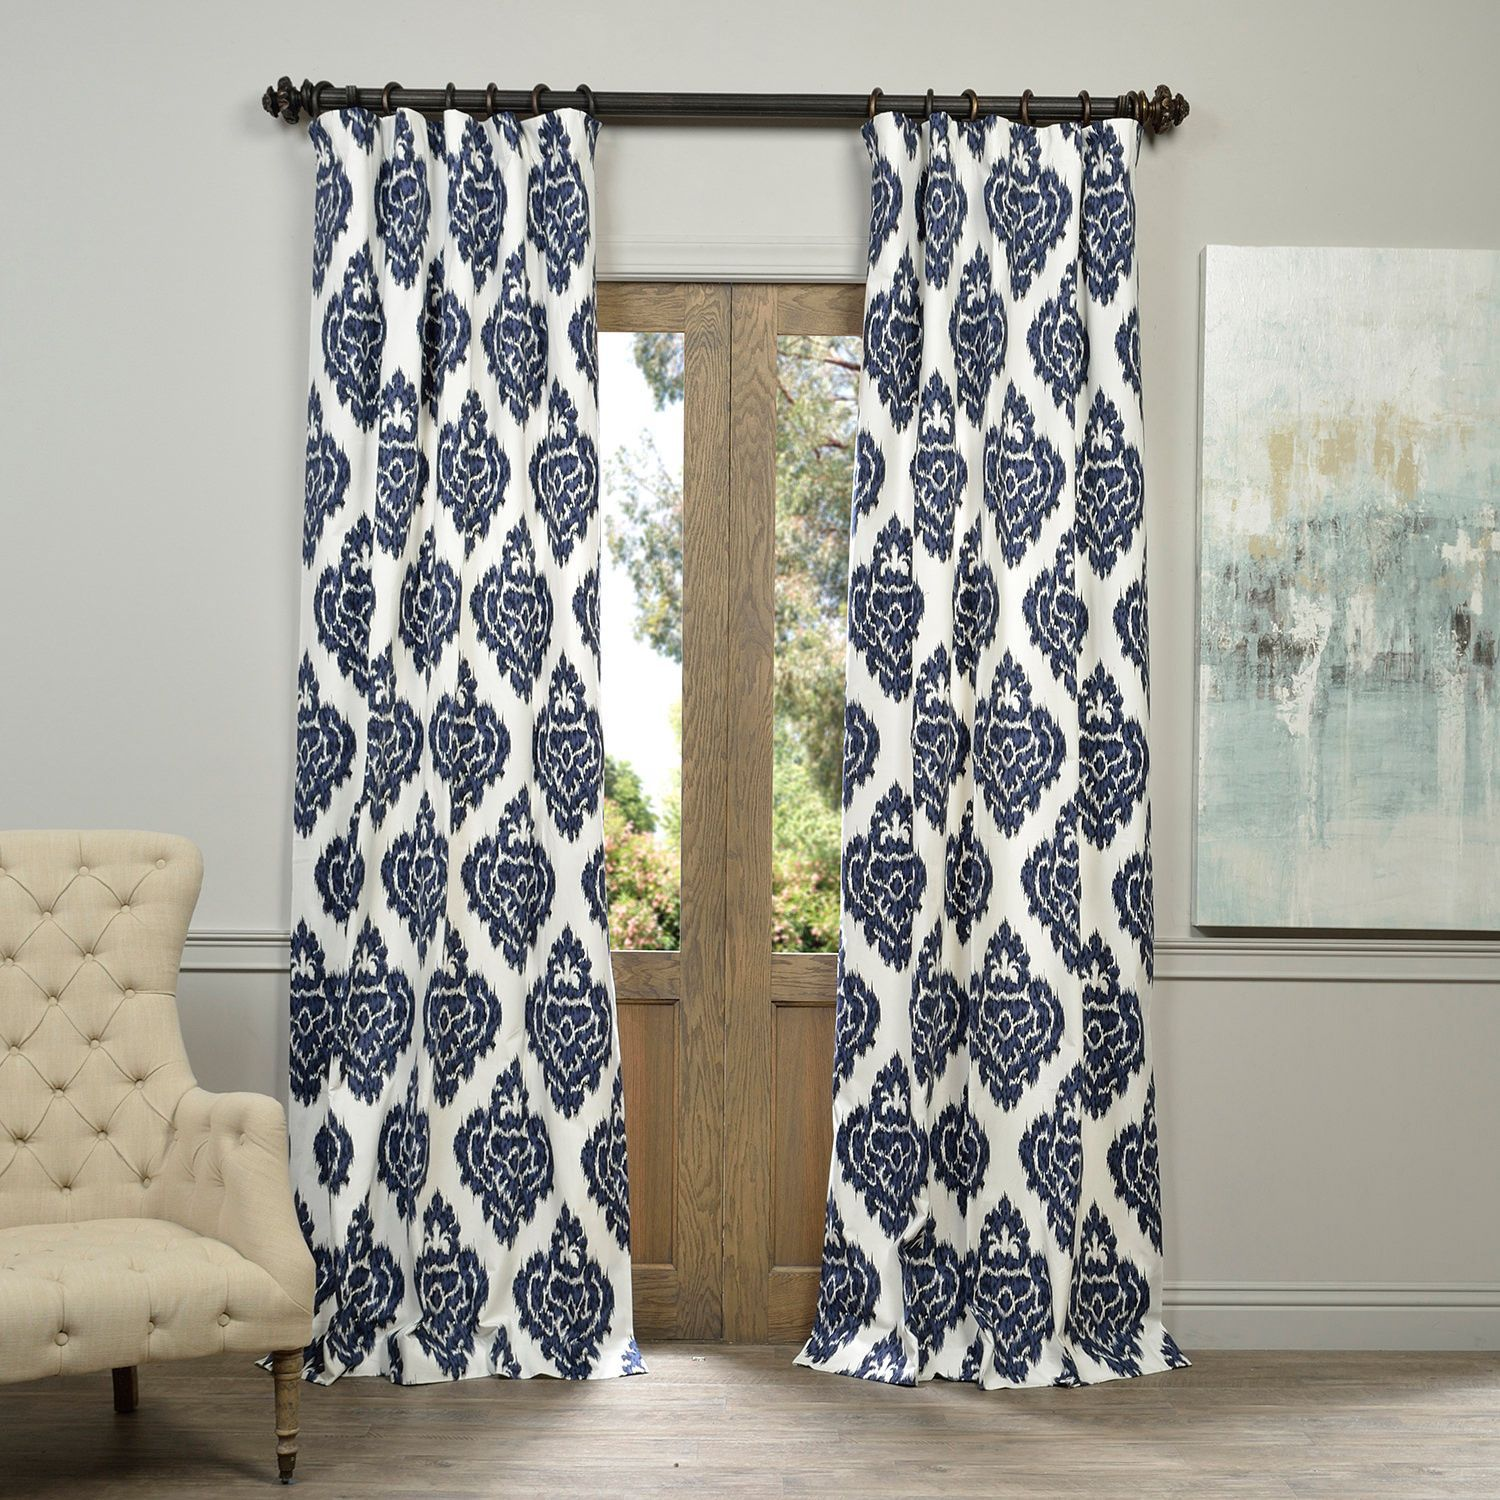 Navy blue patterned curtains - Exclusive Fabrics Ikat Blue Printed Cotton Curtain Panel By Exclusive Fabrics